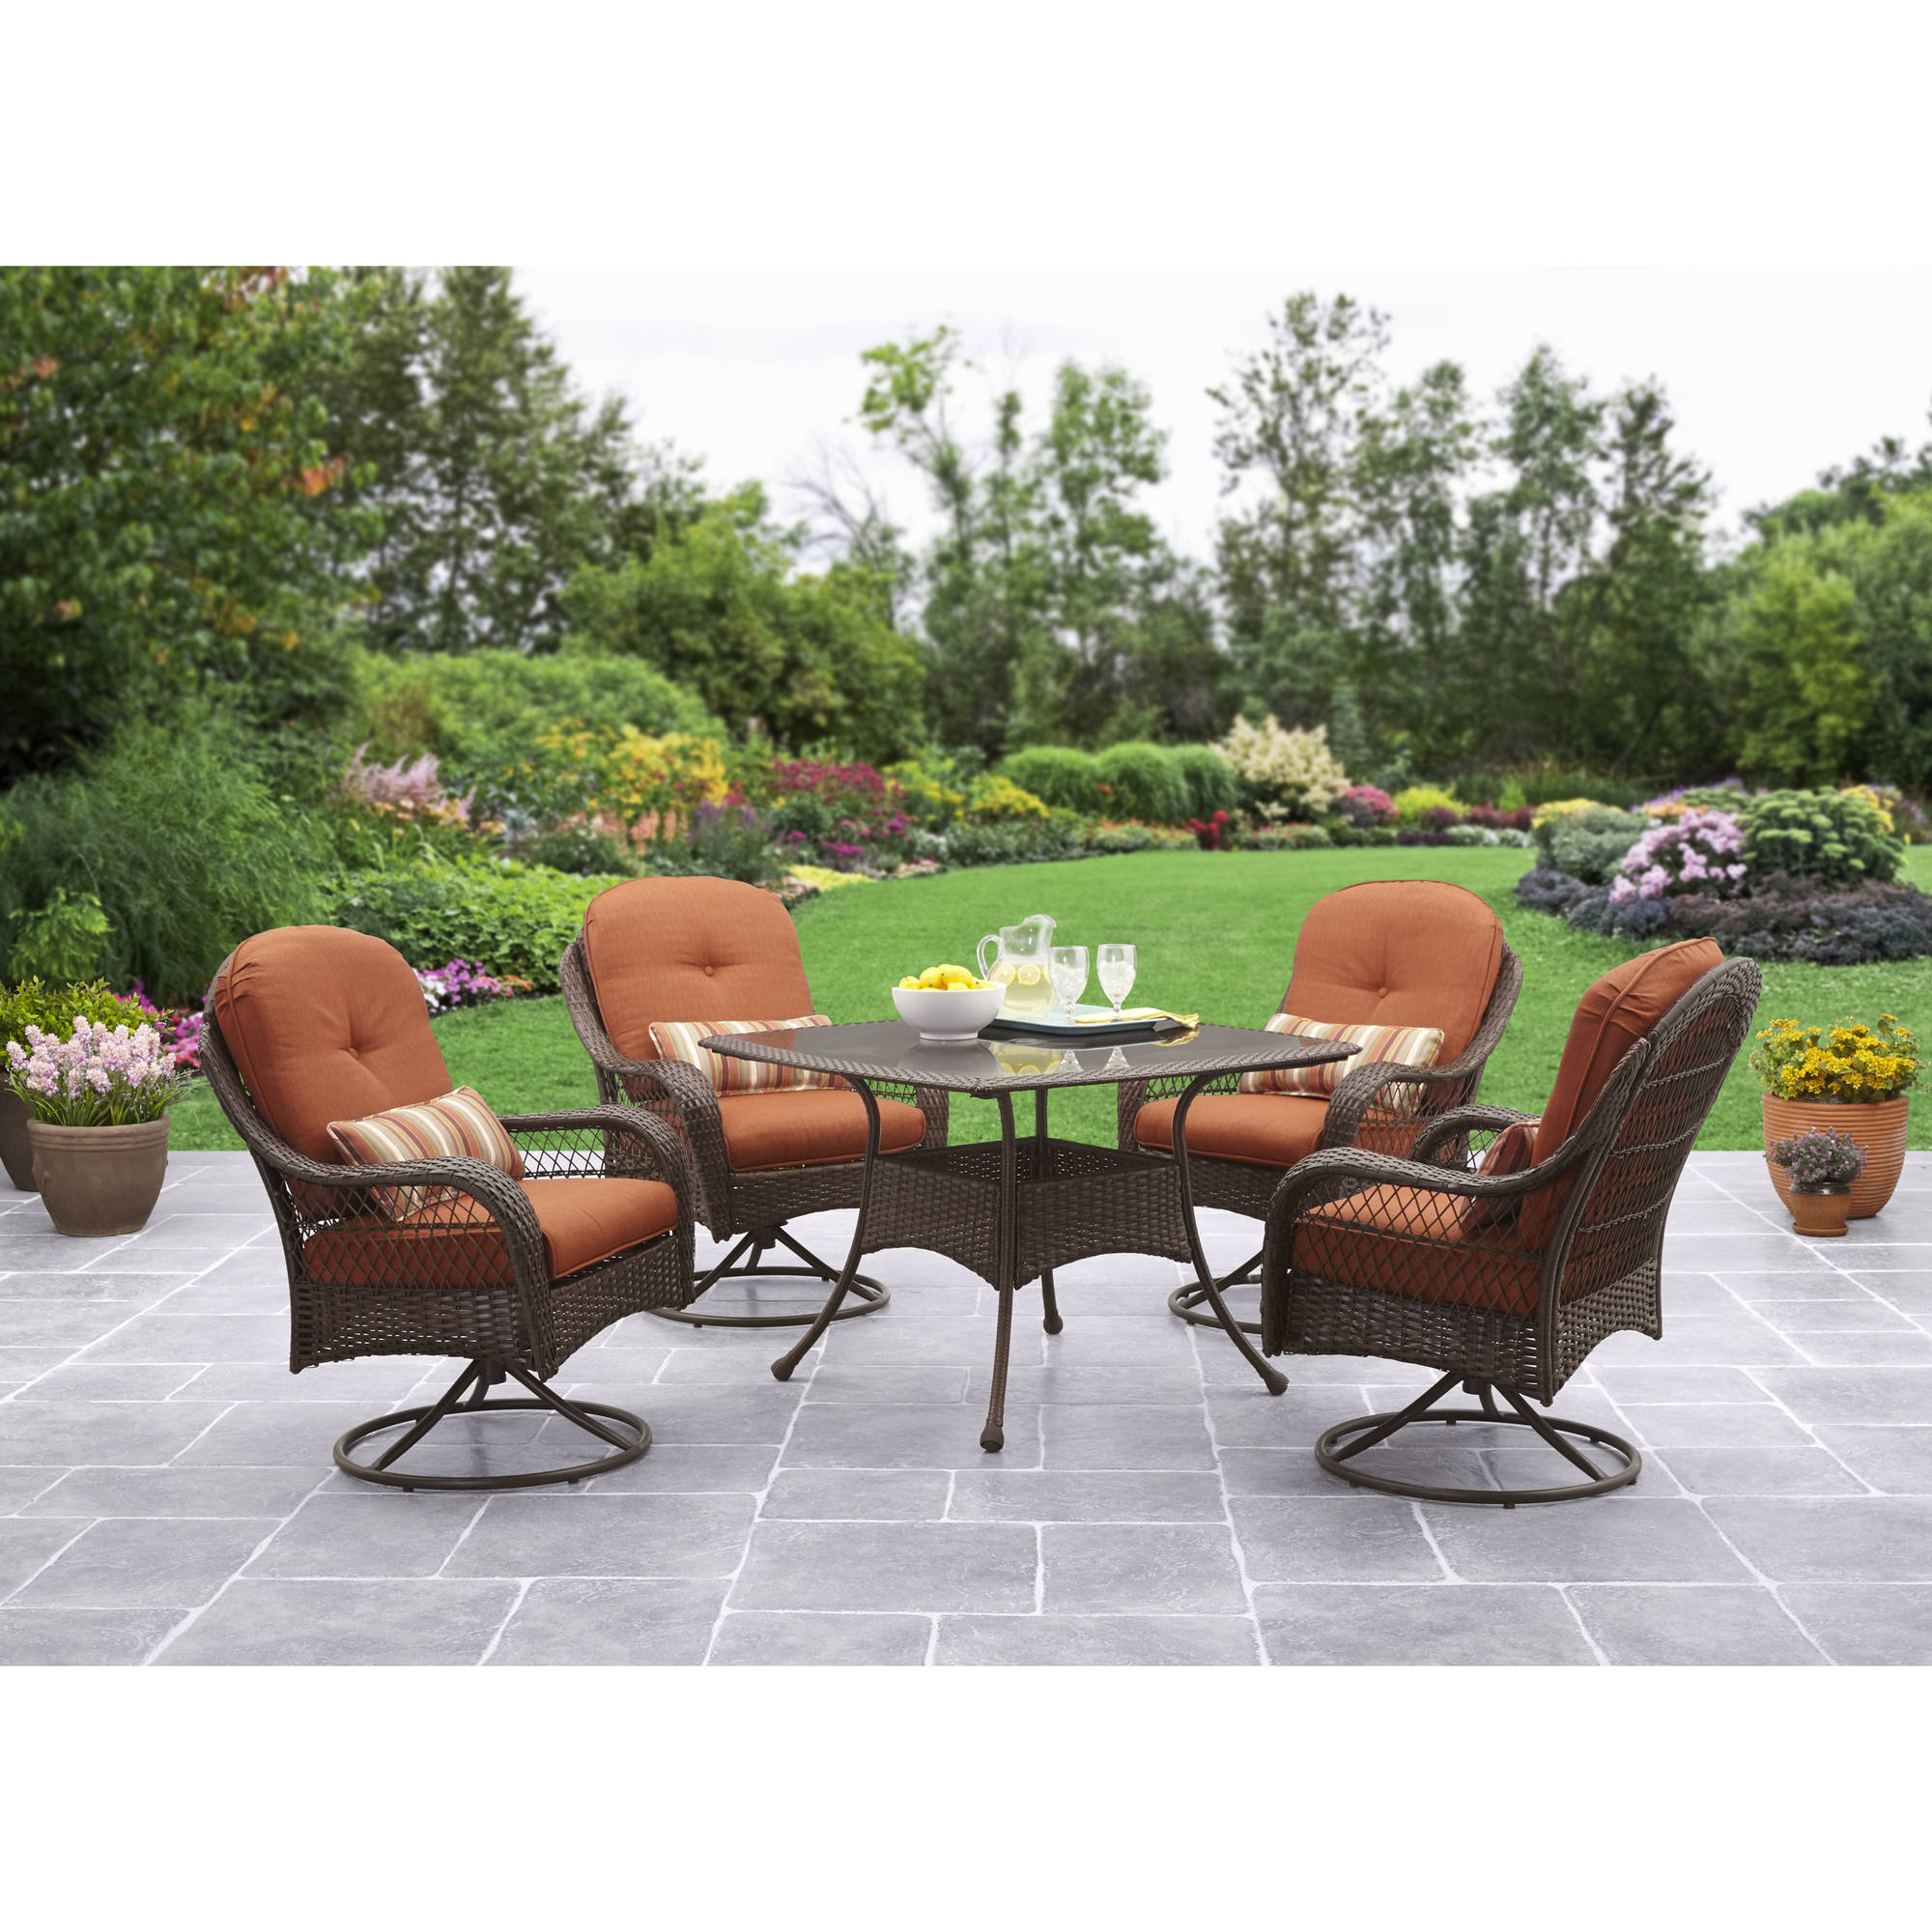 Better Homes And Gardens Azalea Ridge 5 Piece Outdoor Dining Set,  Brown/Vermillion